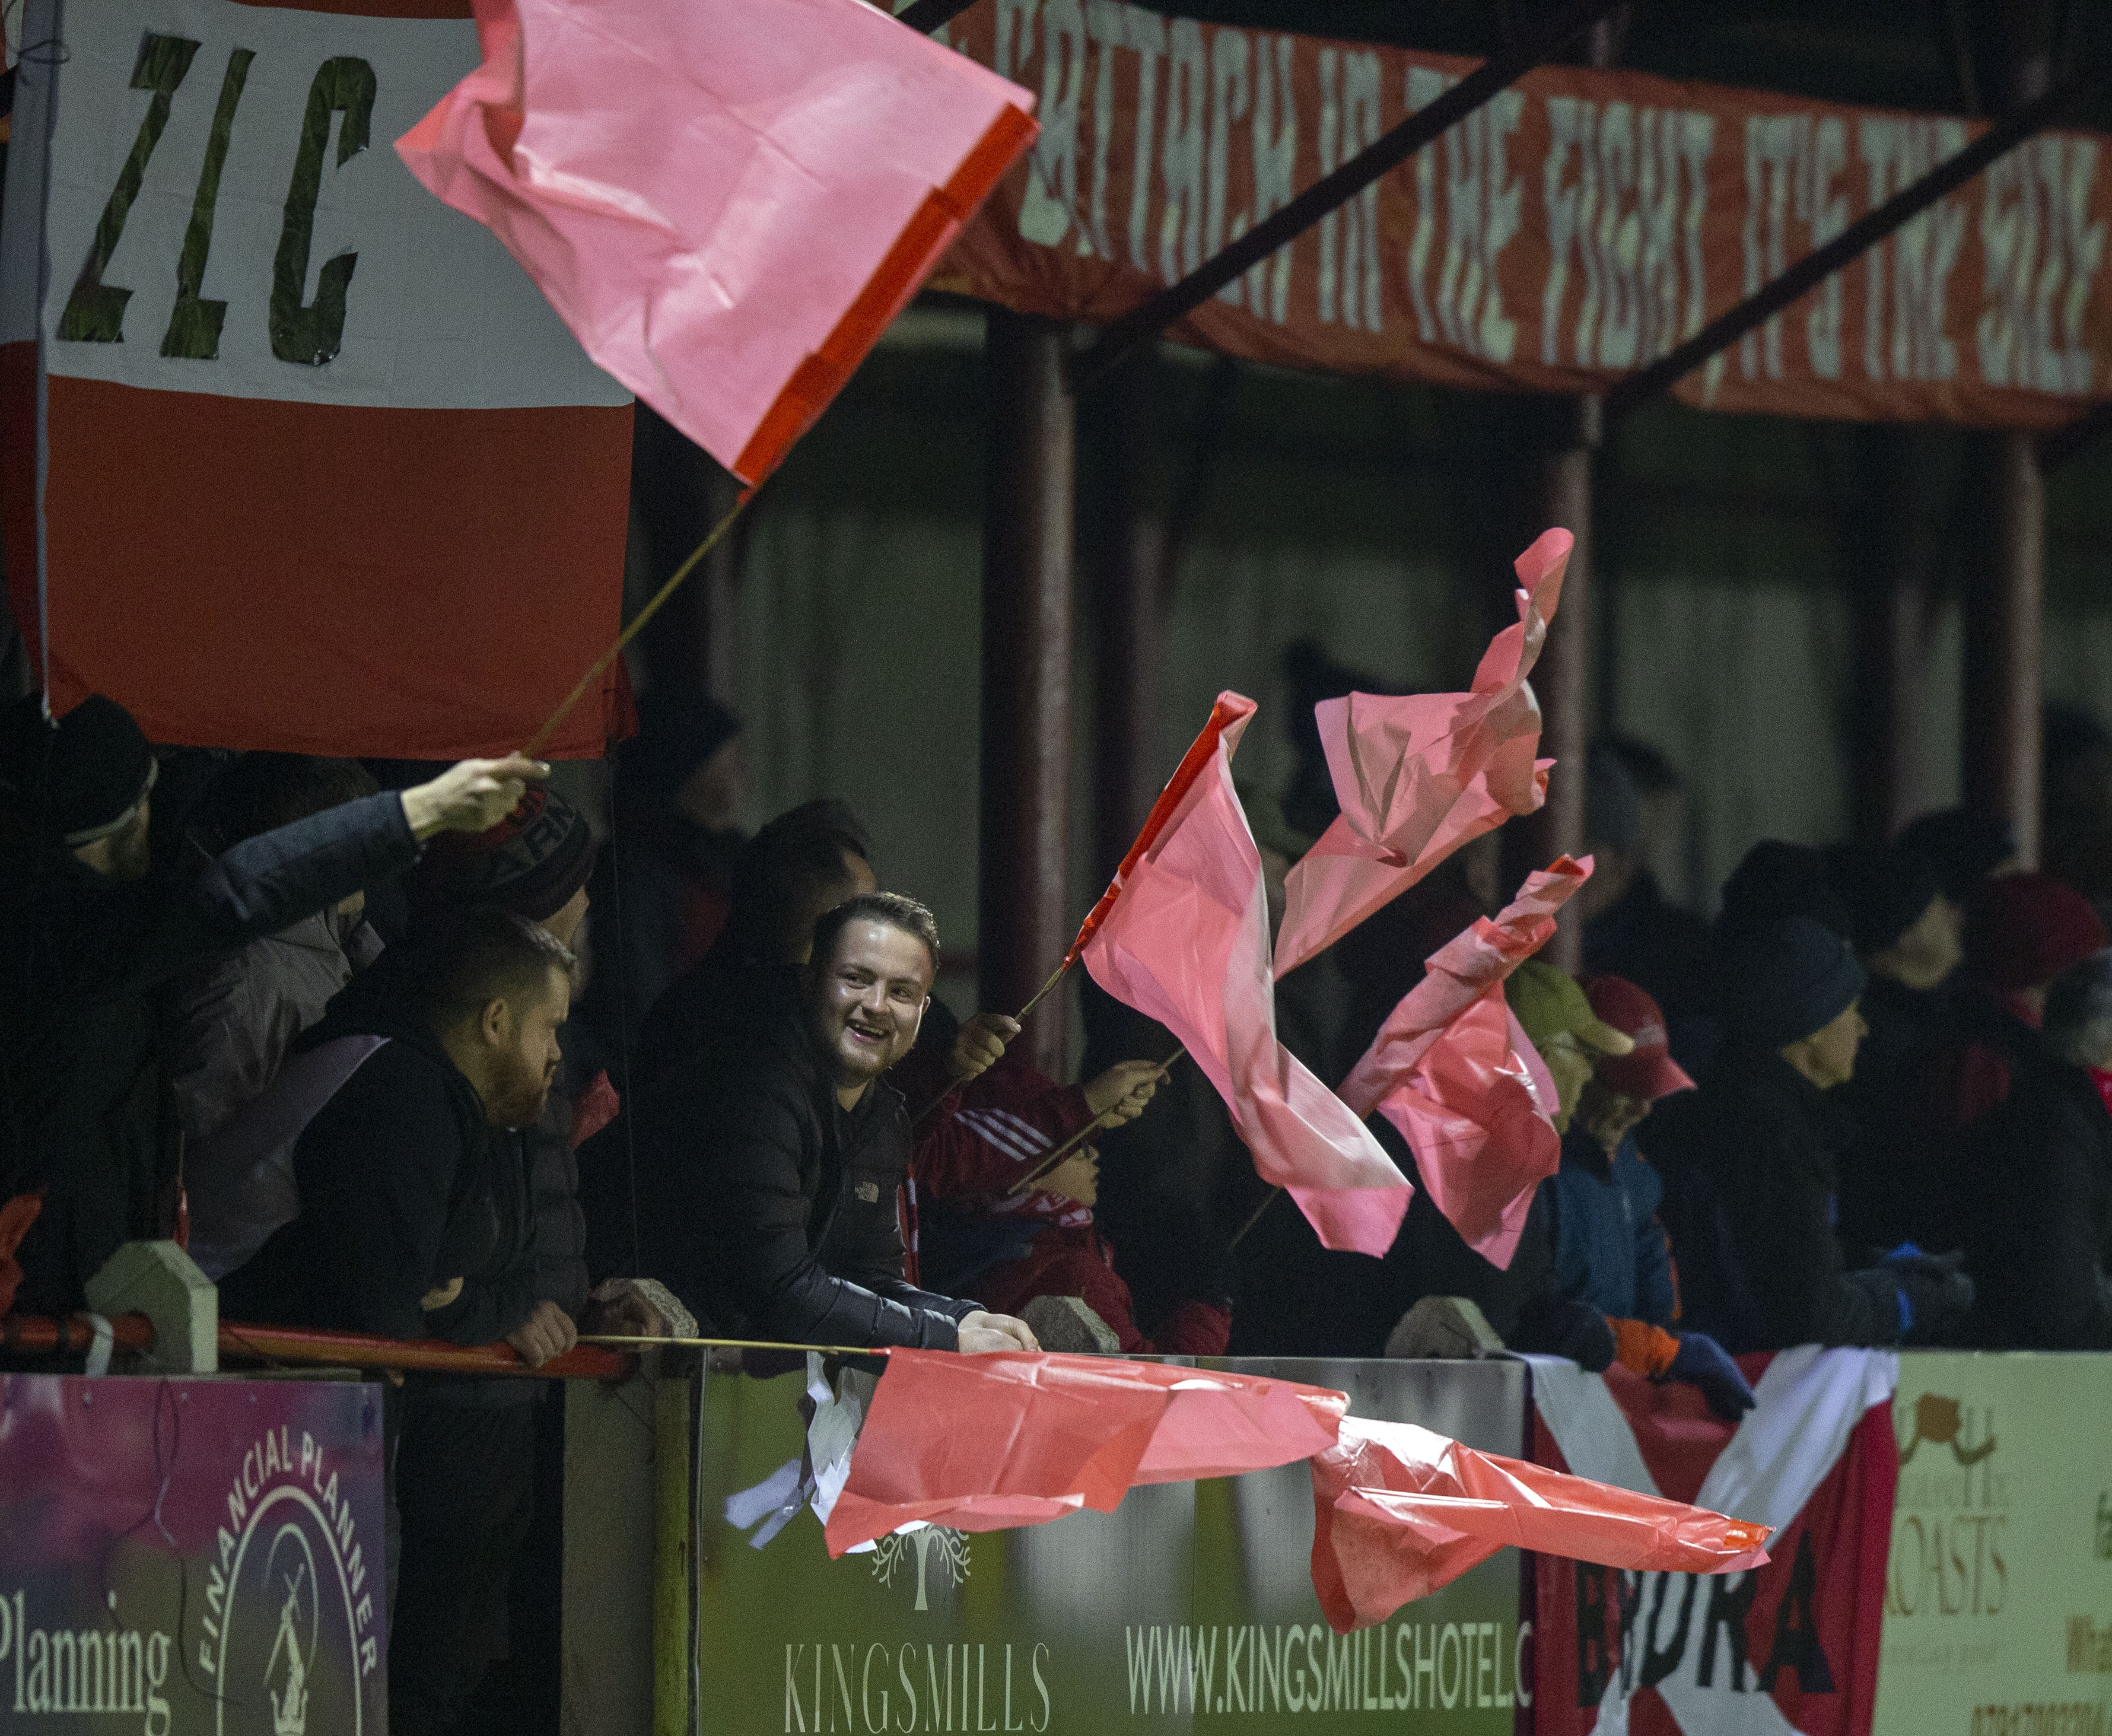 The Brora supporters made themselves seen and heard.